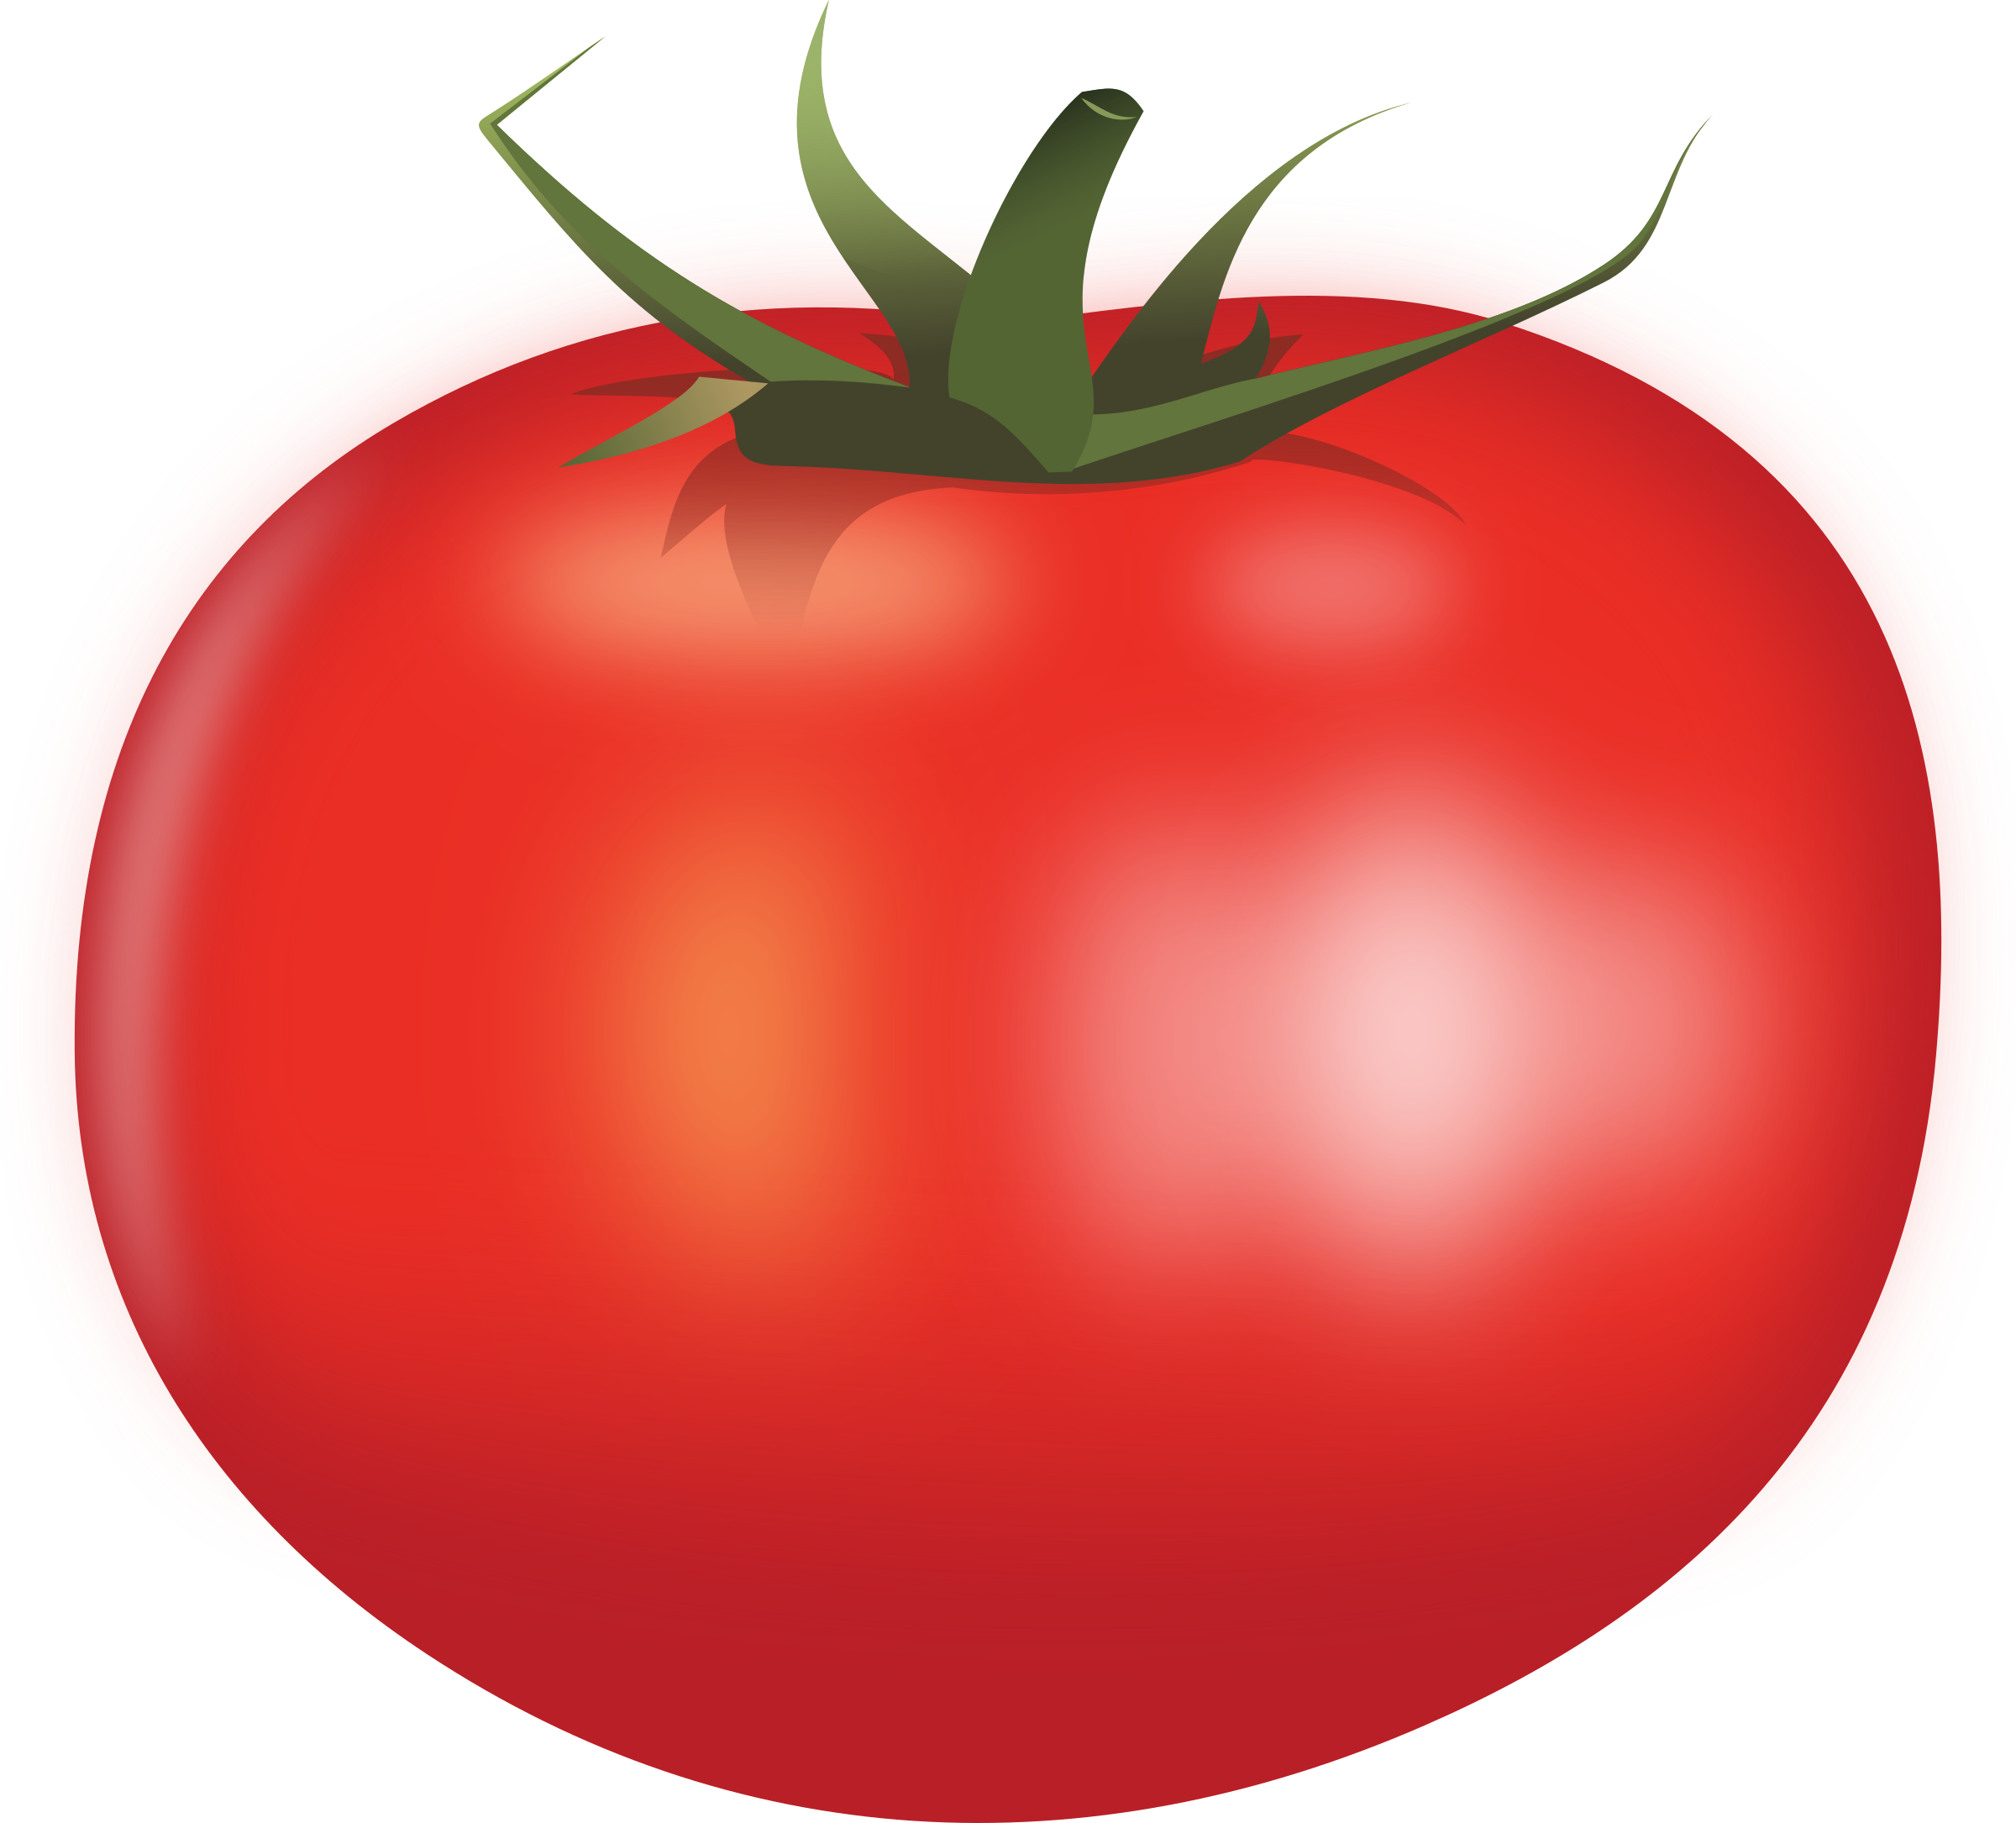 Tomato by Rones by rones